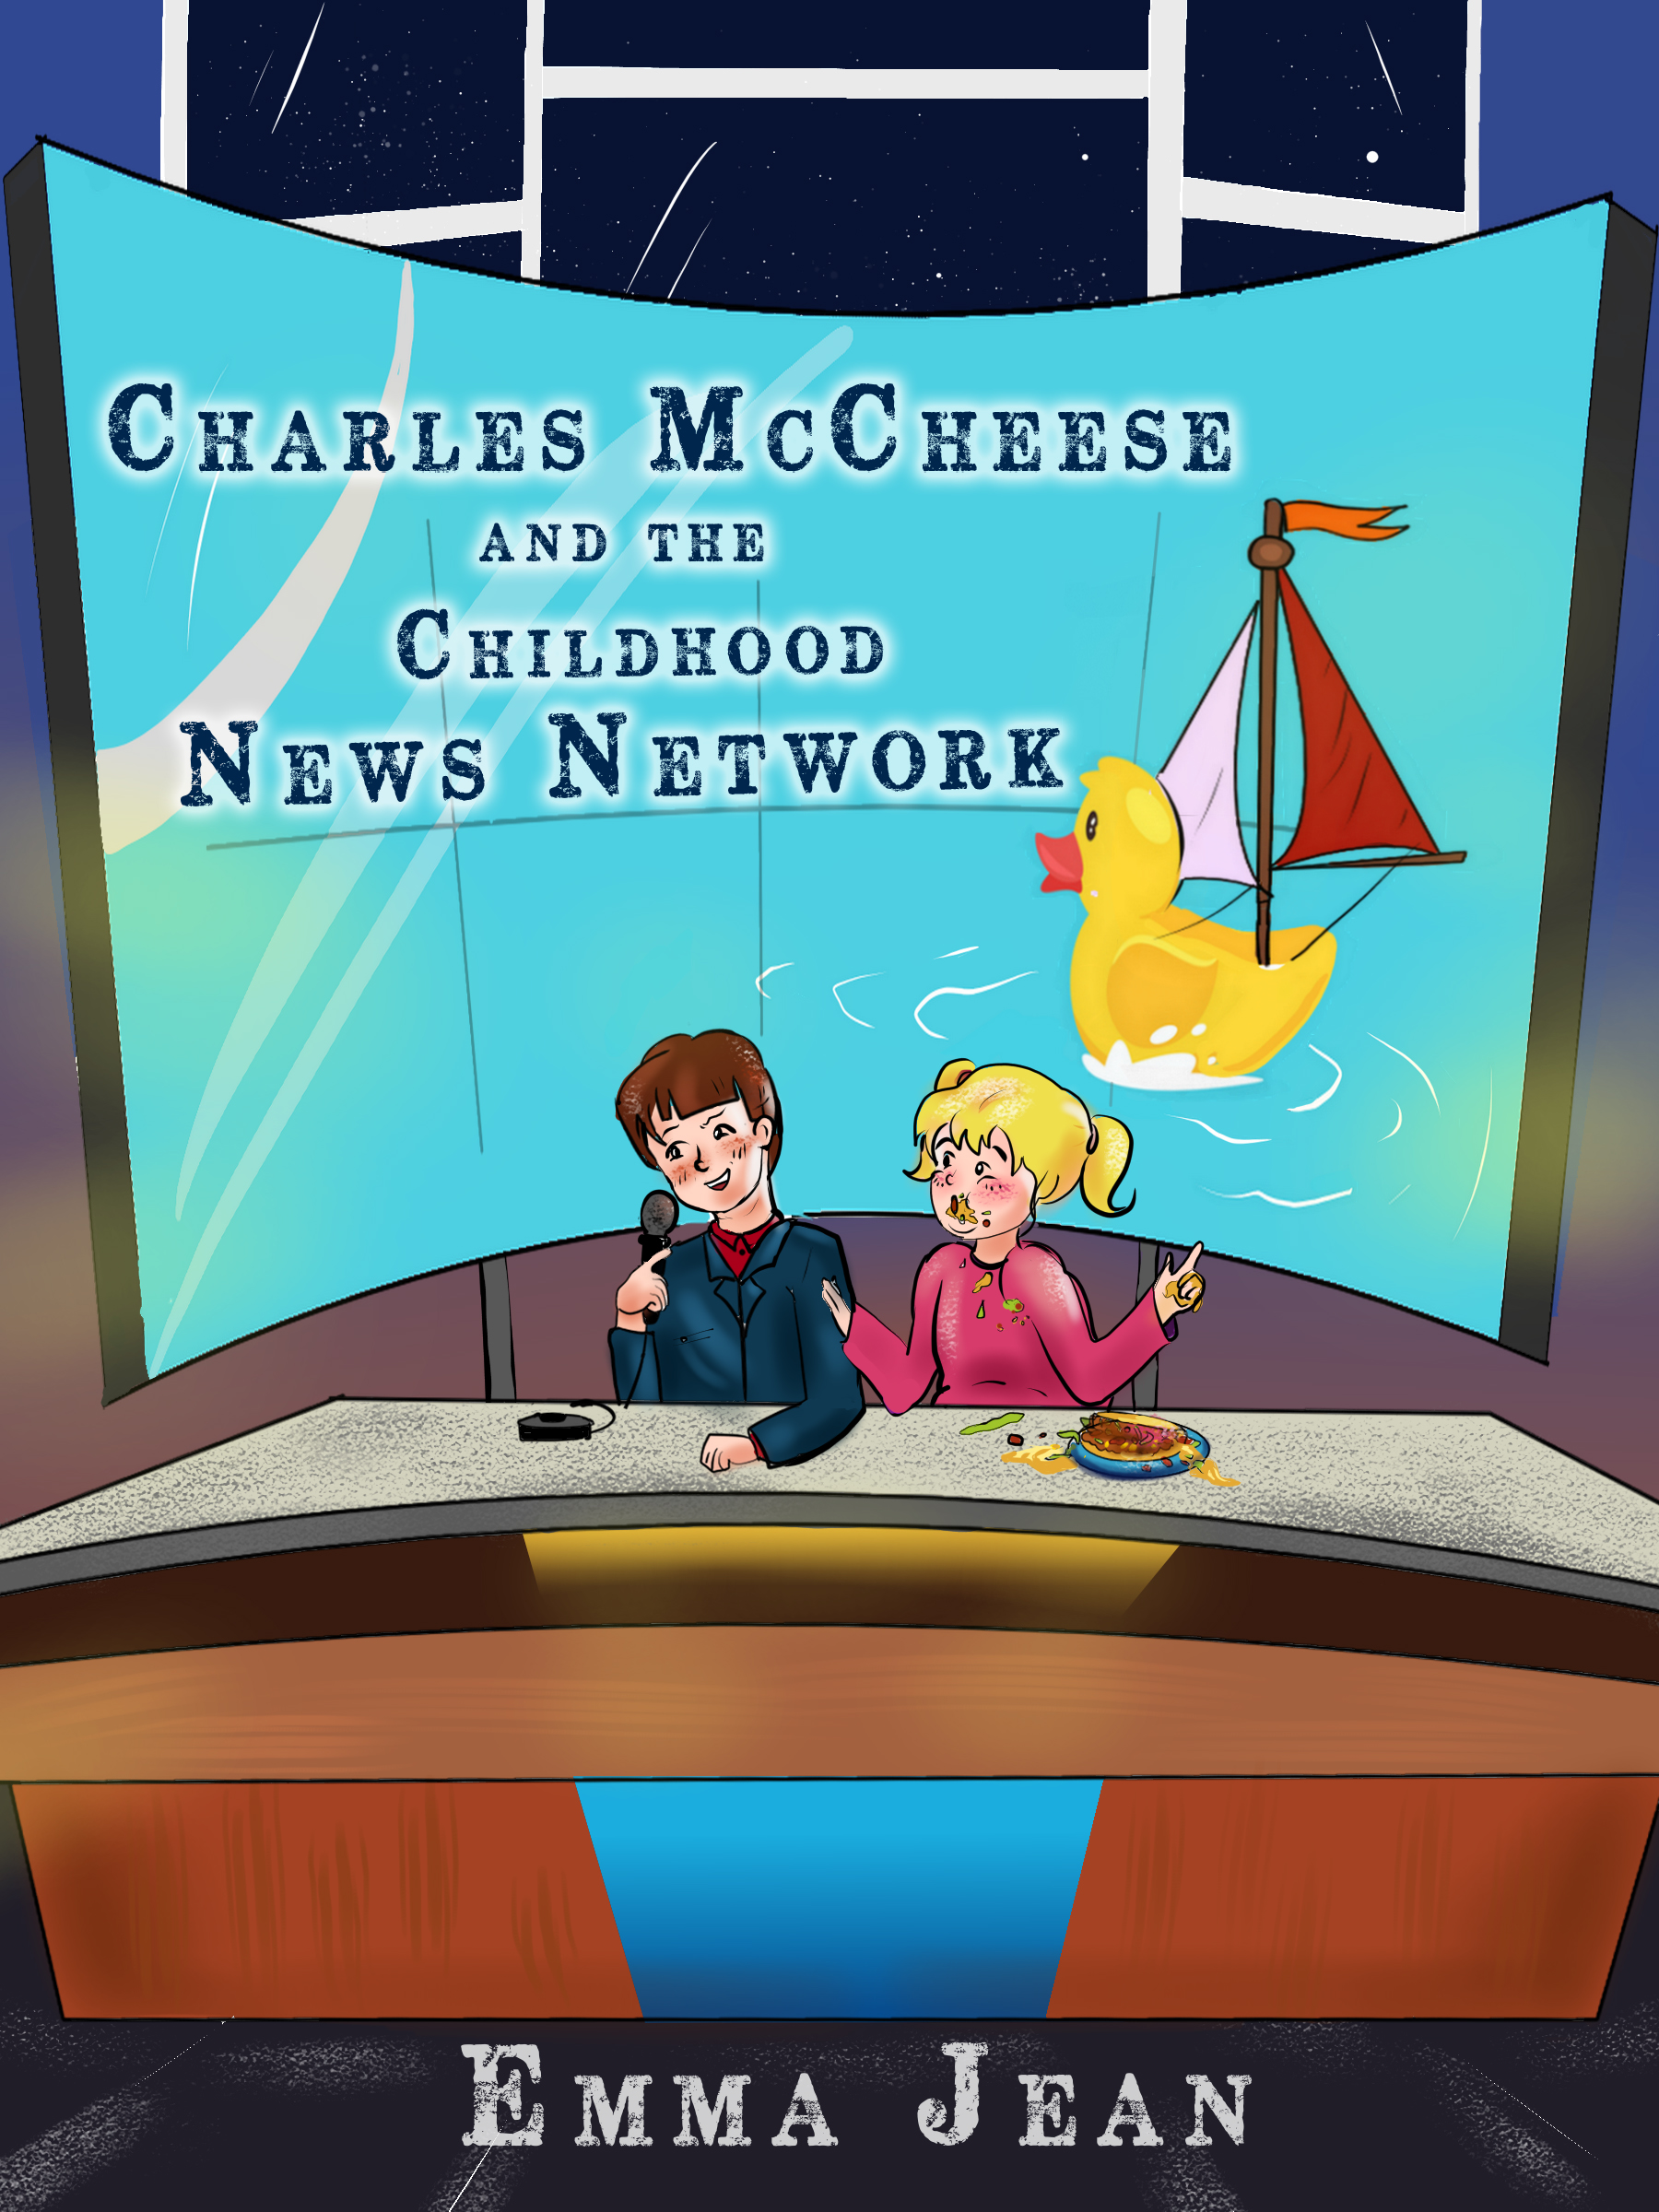 Charles McCheese: And The Childhood News Network